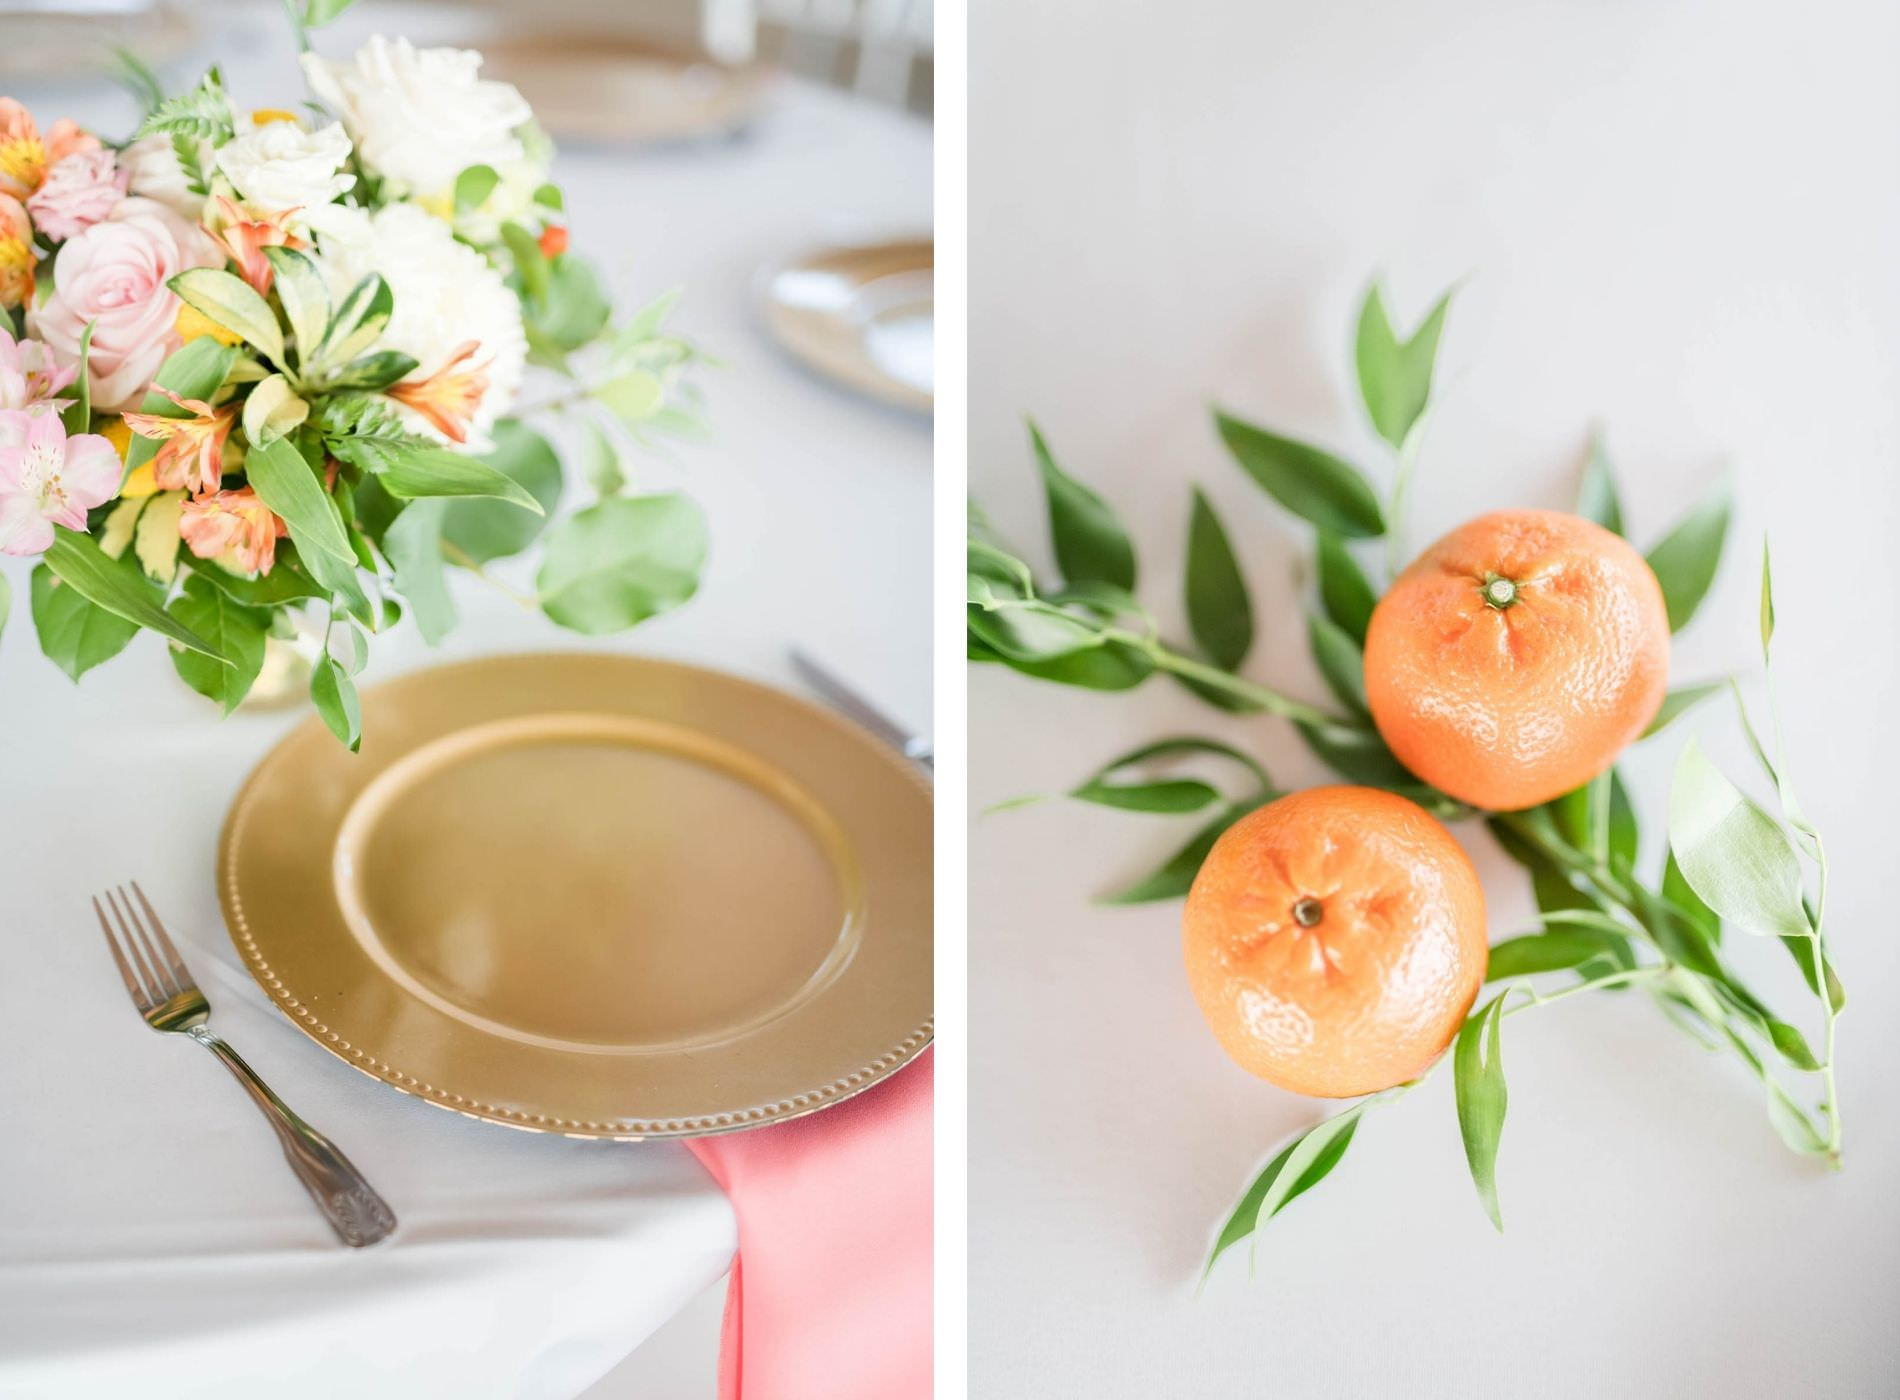 Tropical Wedding Reception Decor, Tangerine Oranges| Gold Charger with Pink Linen Napkin, Colorful Floral Bouquet with Pink, White and Orange Flowers | Tampa Bay Wedding Planner Coastal Coordinating